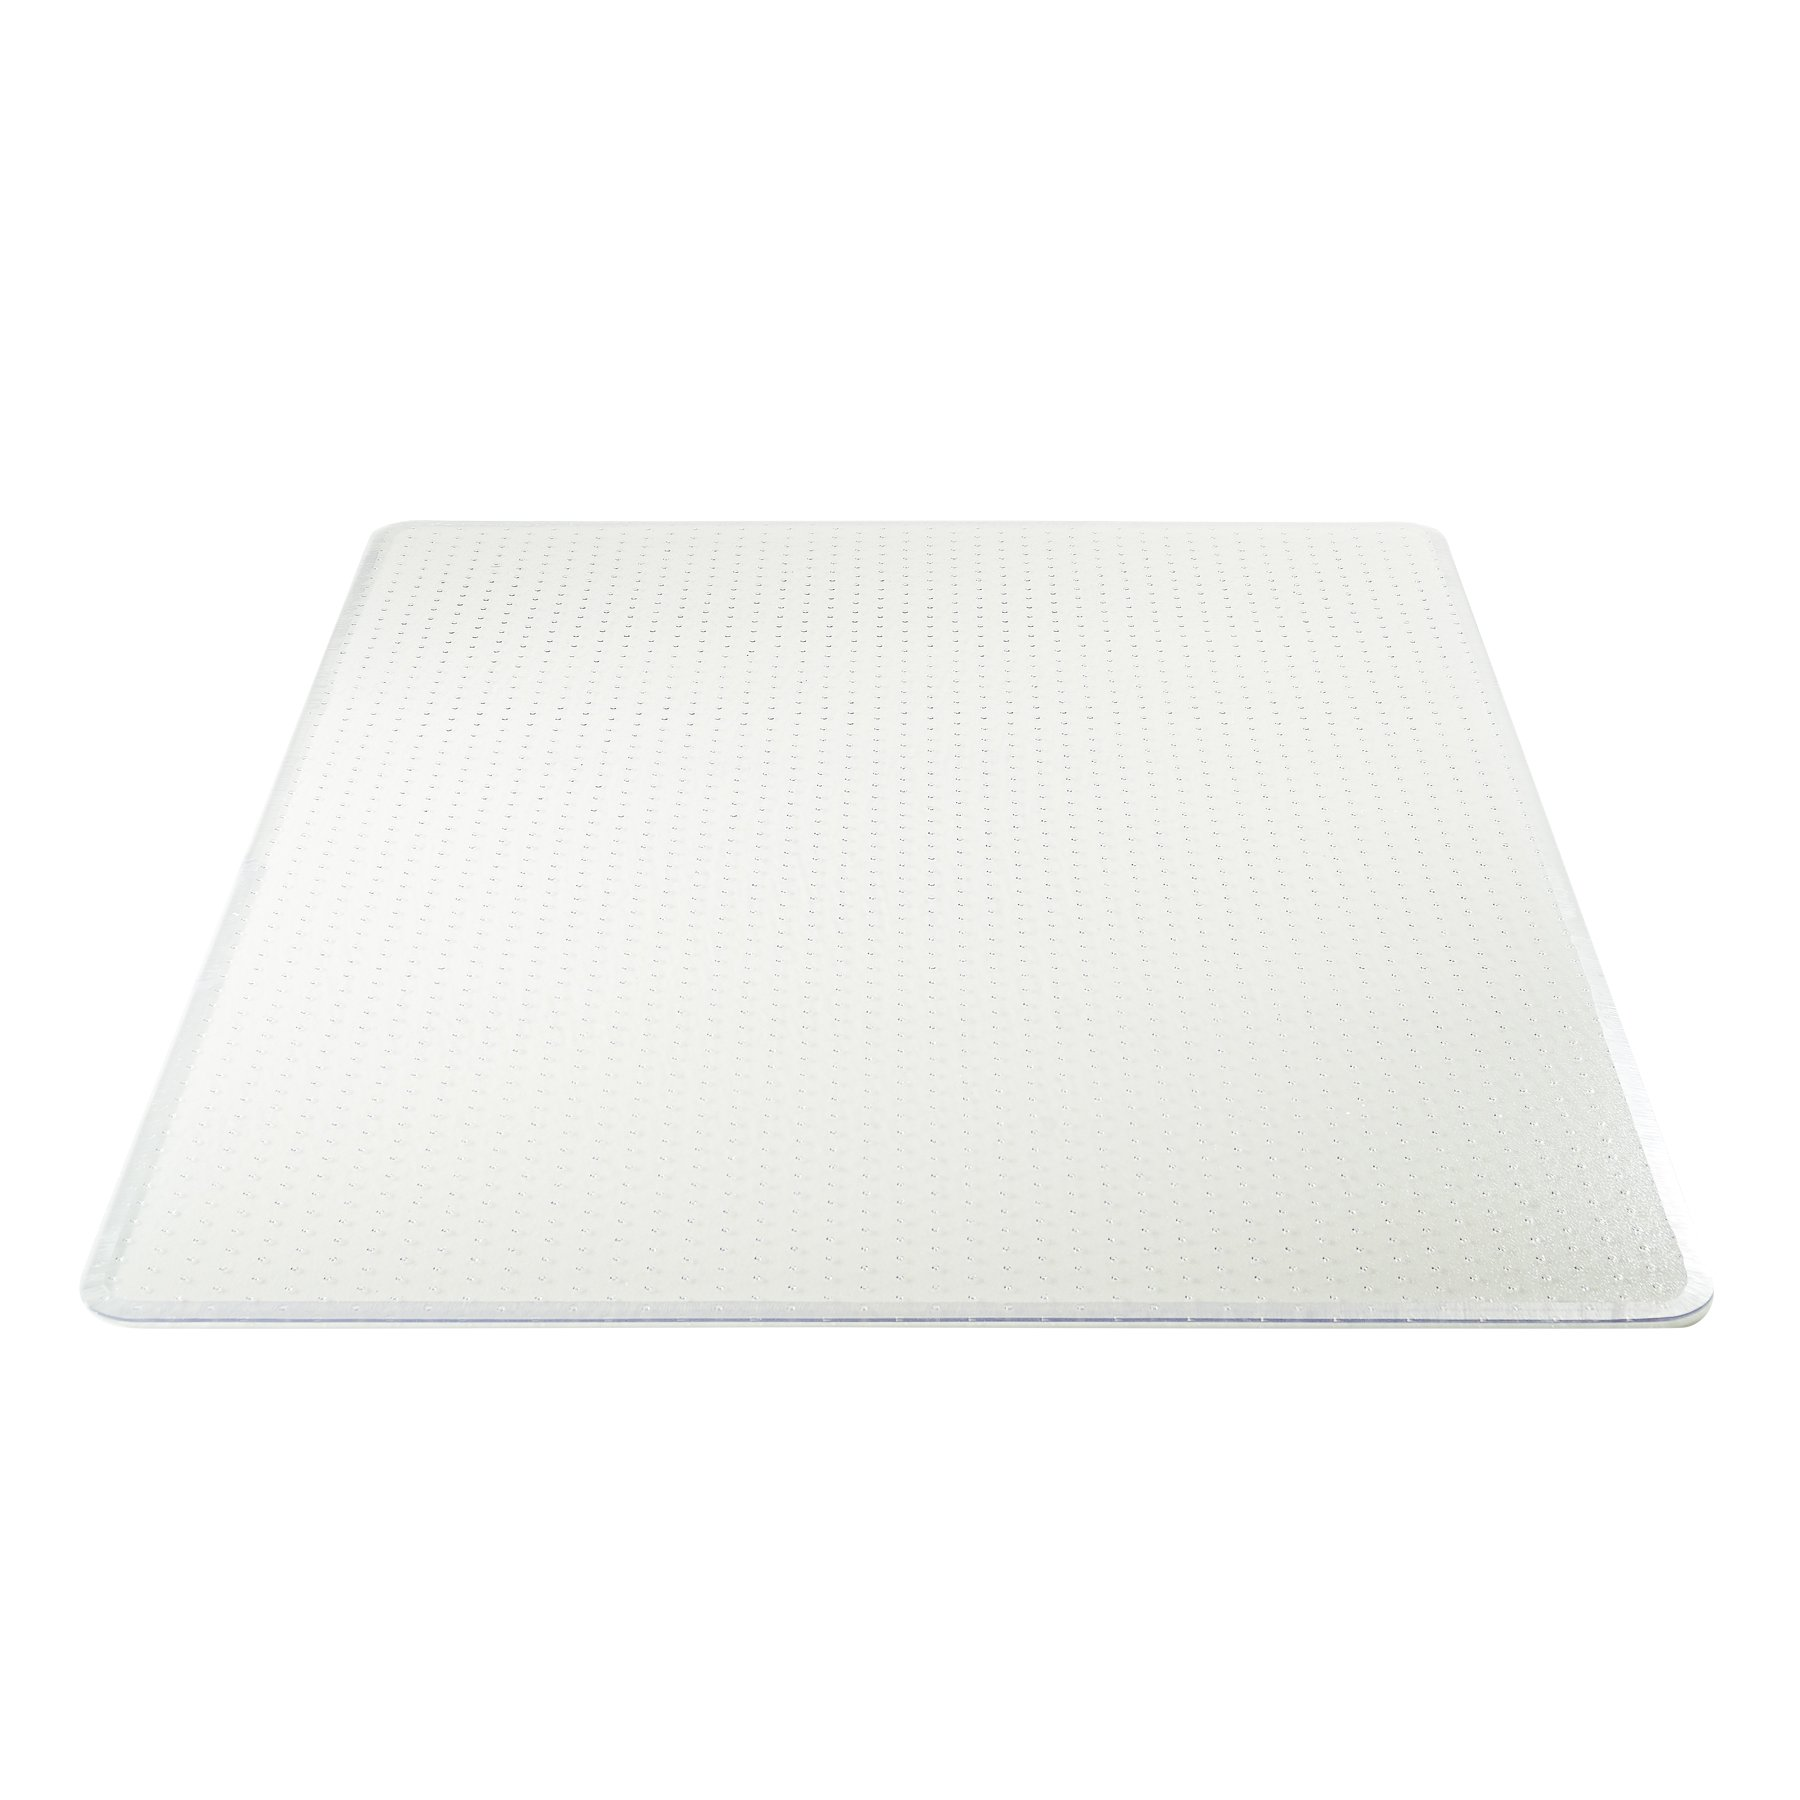 Deflecto Execumat Clear Chair Mat, High Pile Carpet Use, Rectangle, Beveled Edge, 45'' x 53'', Clear (CM17243COM)